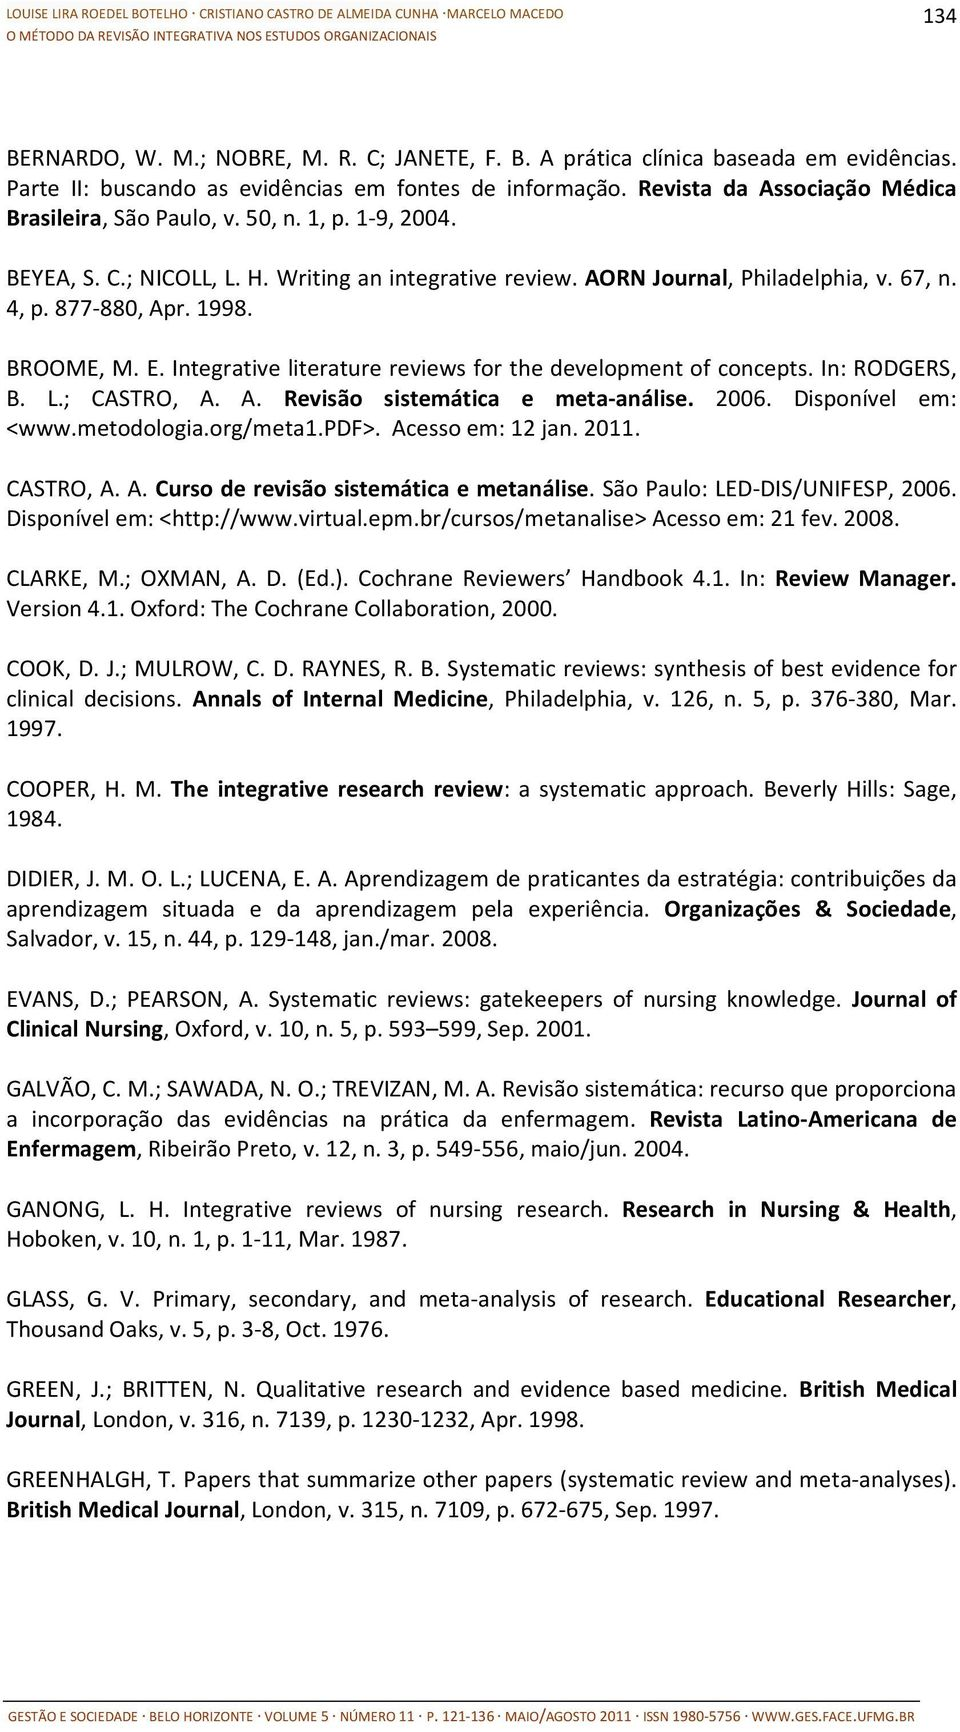 1998. BROOME, M. E. Integrative literature reviews for the development of concepts. In: RODGERS, B. L.; CASTRO, A. A. Revisão sistemática e meta-análise. 2006. Disponível em: <www.metodologia.